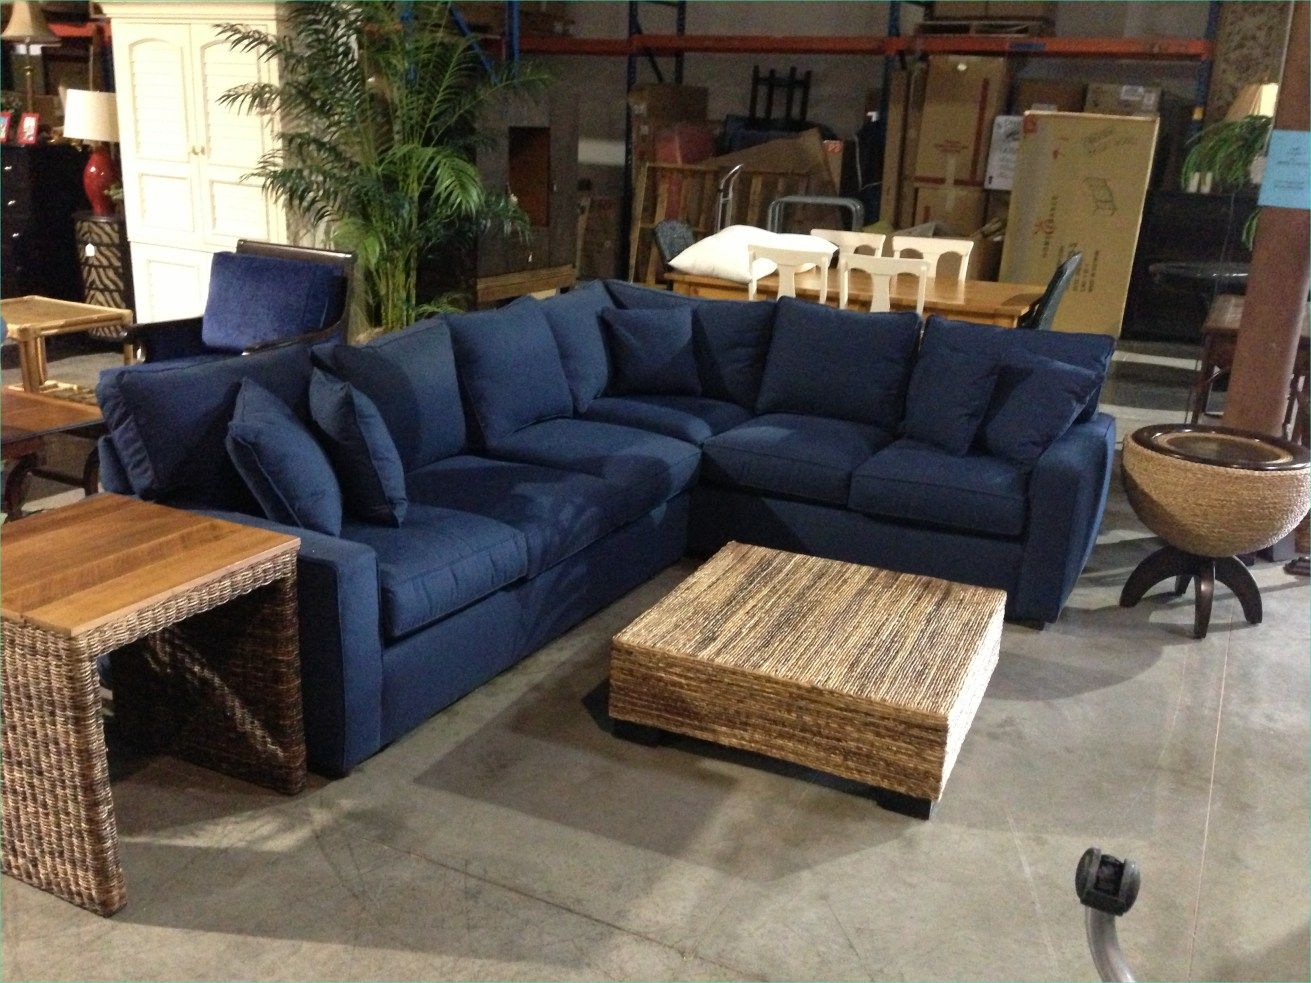 40 Awesome And Cosy Navy Furniture For Family Room Ideas Blue Sofa Living Blue Sofas Living Room Navy Blue Living Room